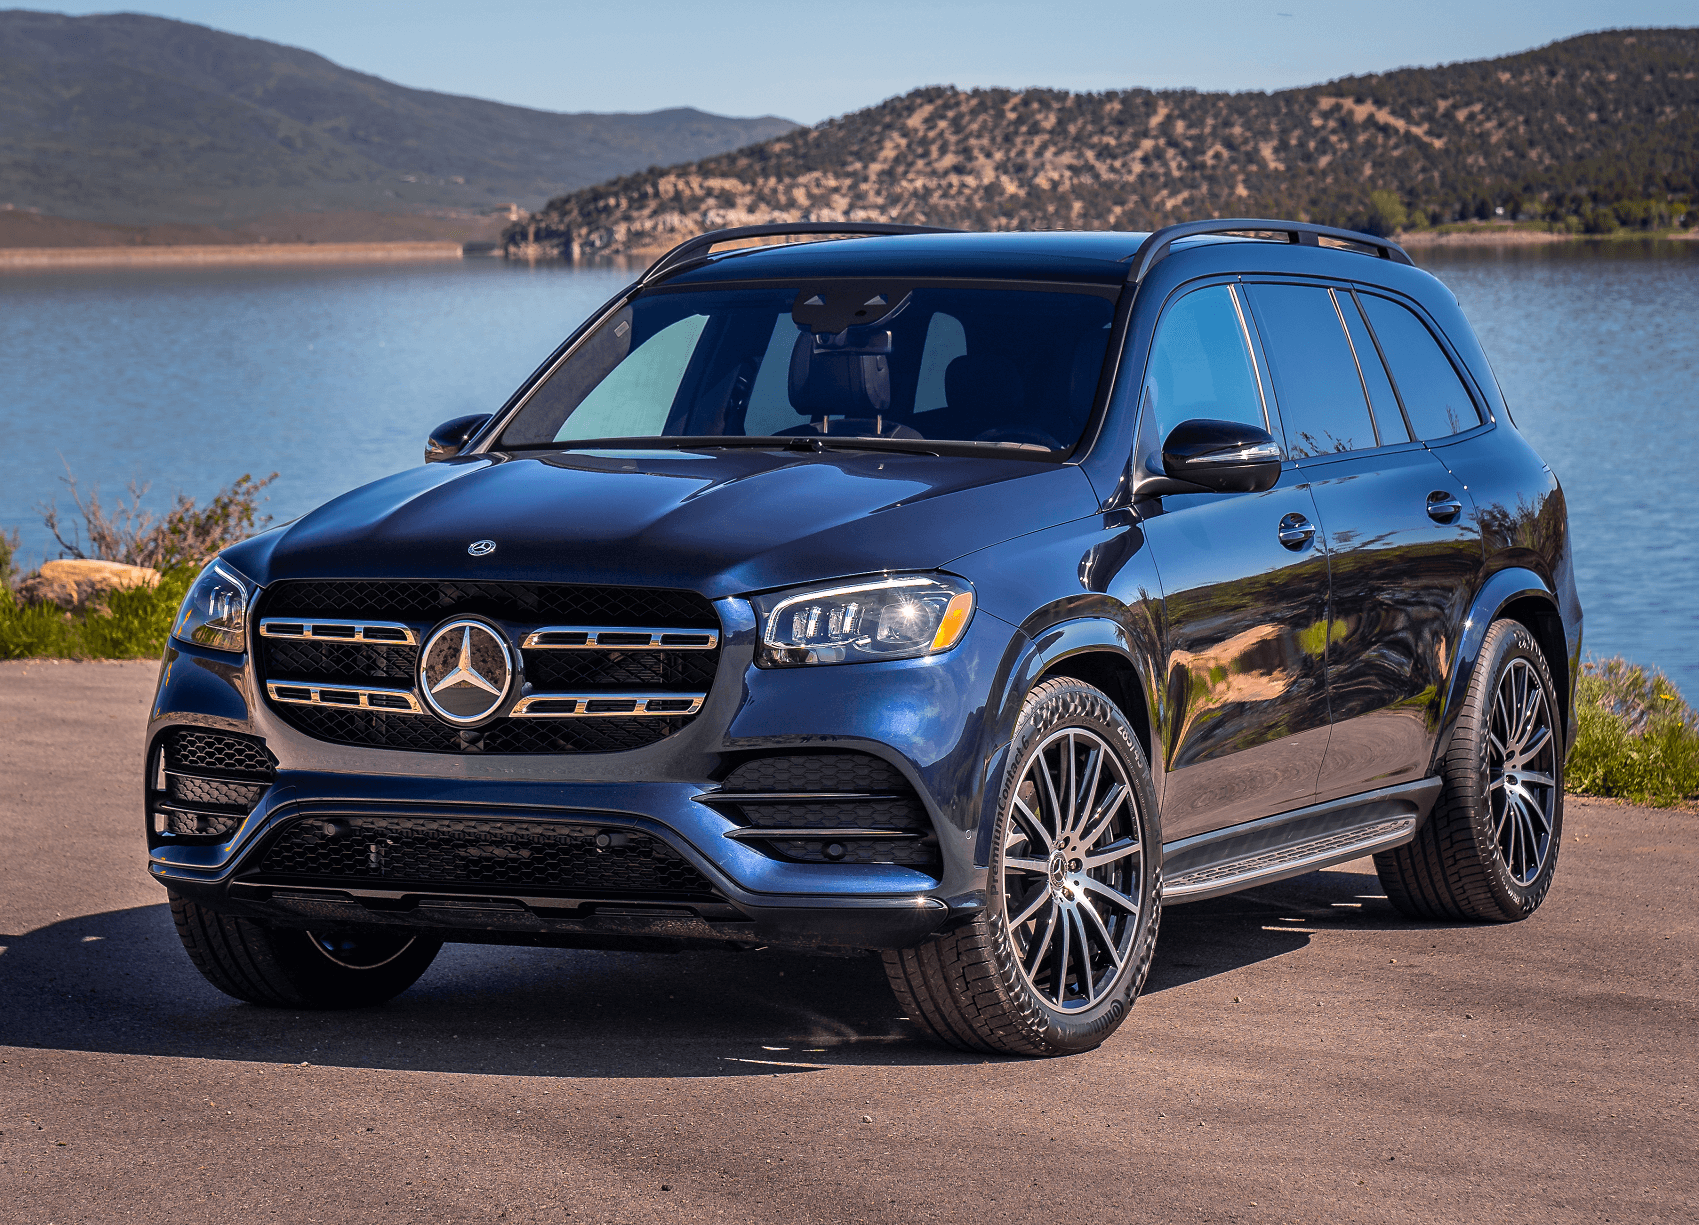 2019 Mercedes Benz GLS in Black